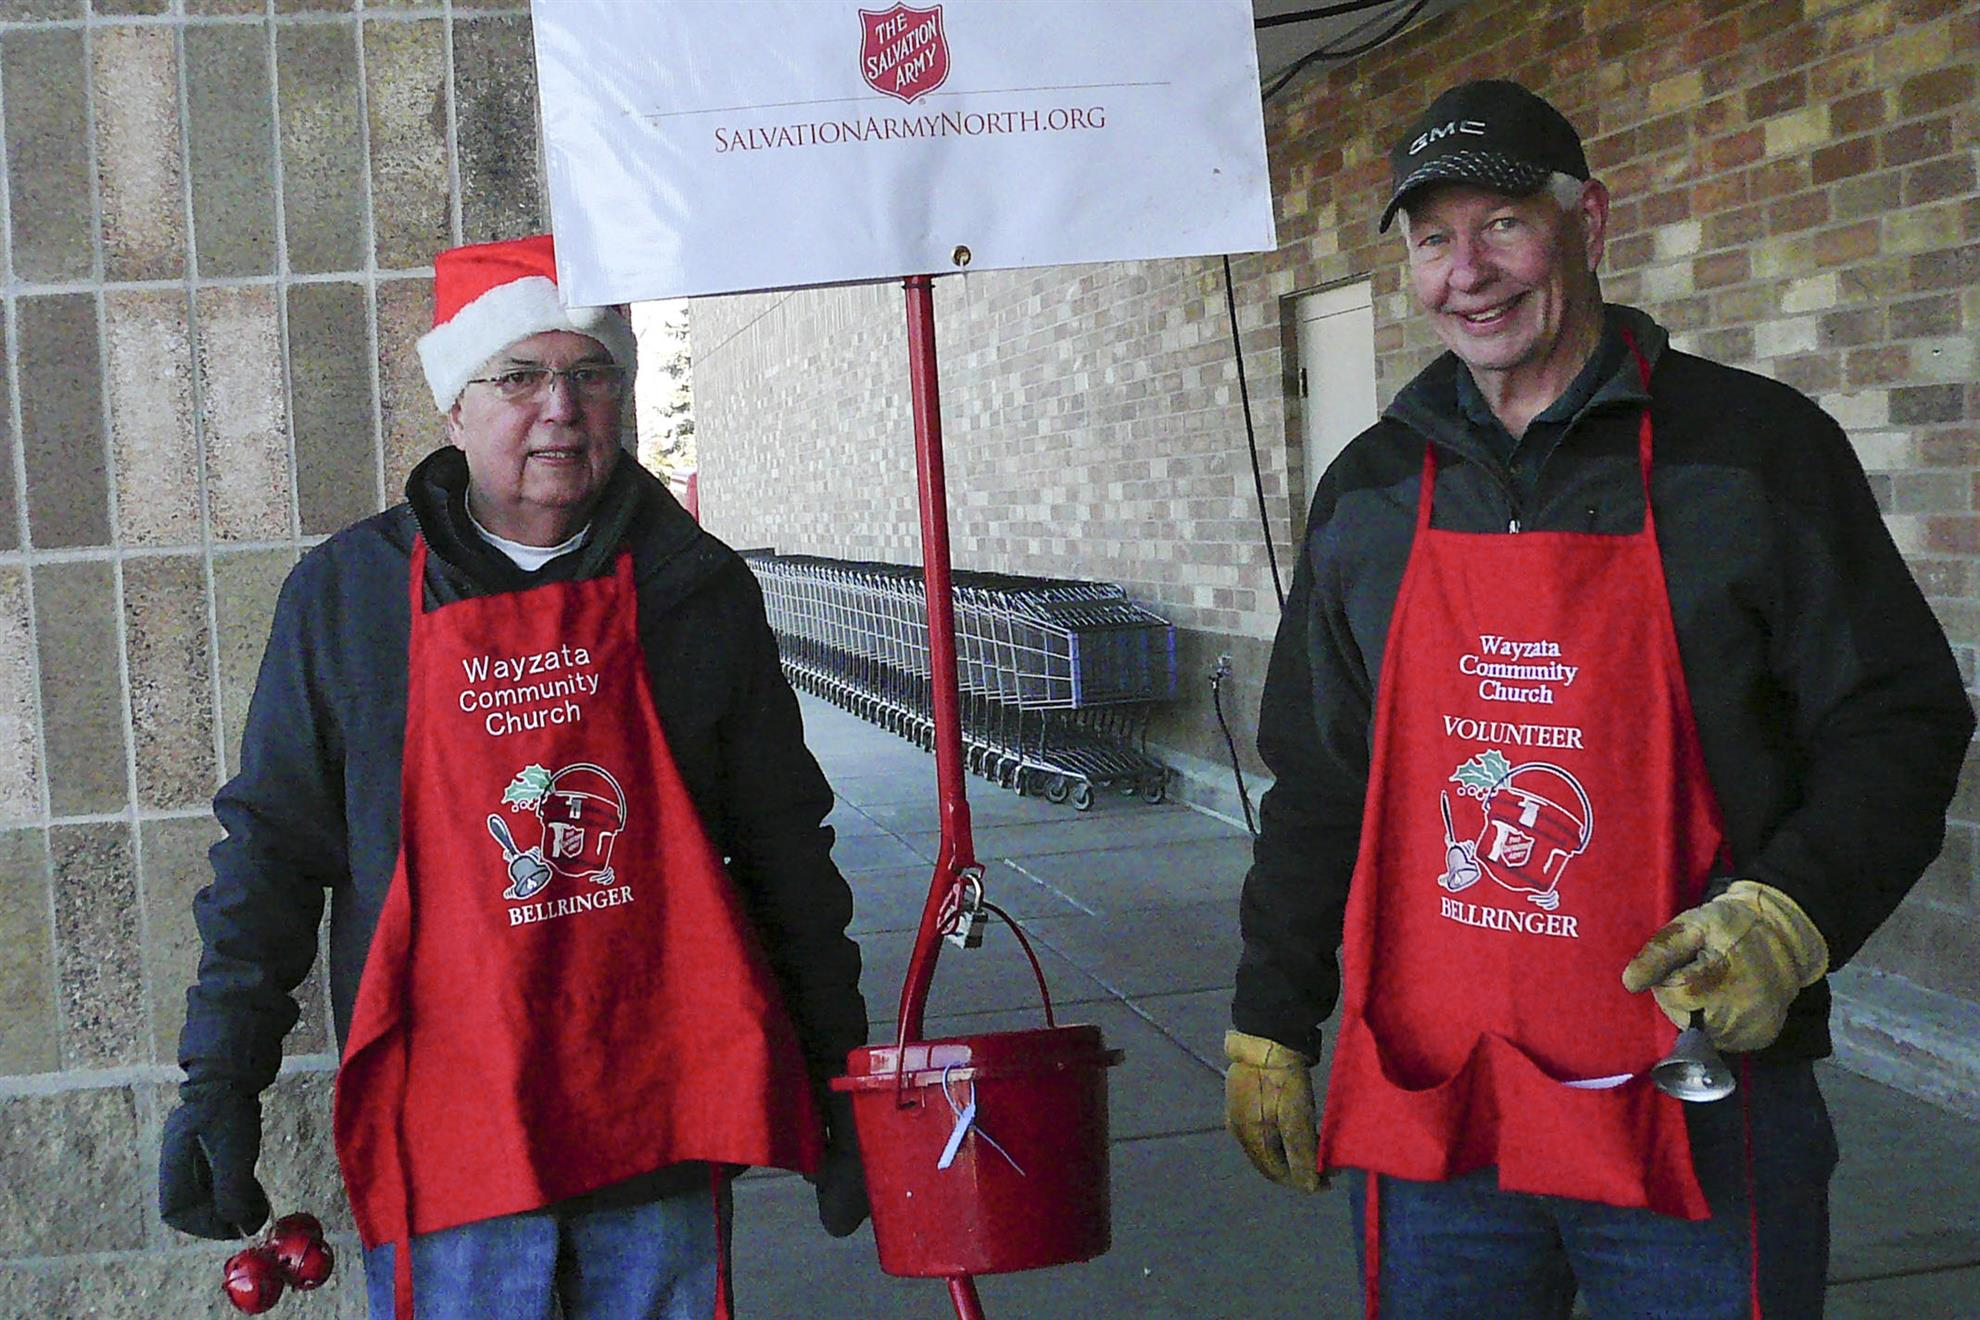 Bell-ringing for Salvation Army